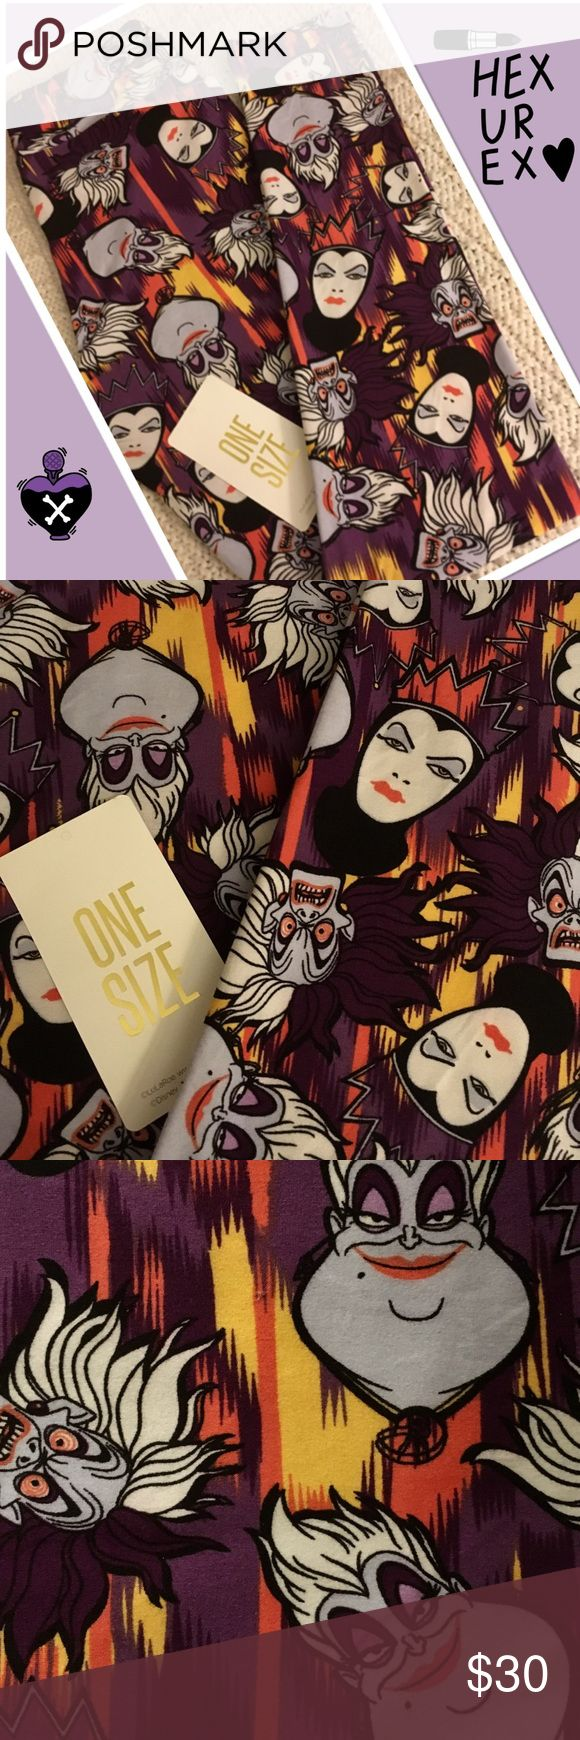 🖤Disney Villains! LulaRoe One Size Leggings!🖤 🖤LulaRoe Disney One Size Leggings ~ The  She-Villains! ~ These bottoms have a deep purple and fiery base that's full of femme fatales - Queen Grimhilde, Cruella, and even Ursula! ~ Who said princesses always prevail?🖤 *Cross posted to another site  All leggings are bought new from consultants and arrive with and without tags. Each pair is inspected and never, ever worn!:-) LuLaRoe Pants Leggings